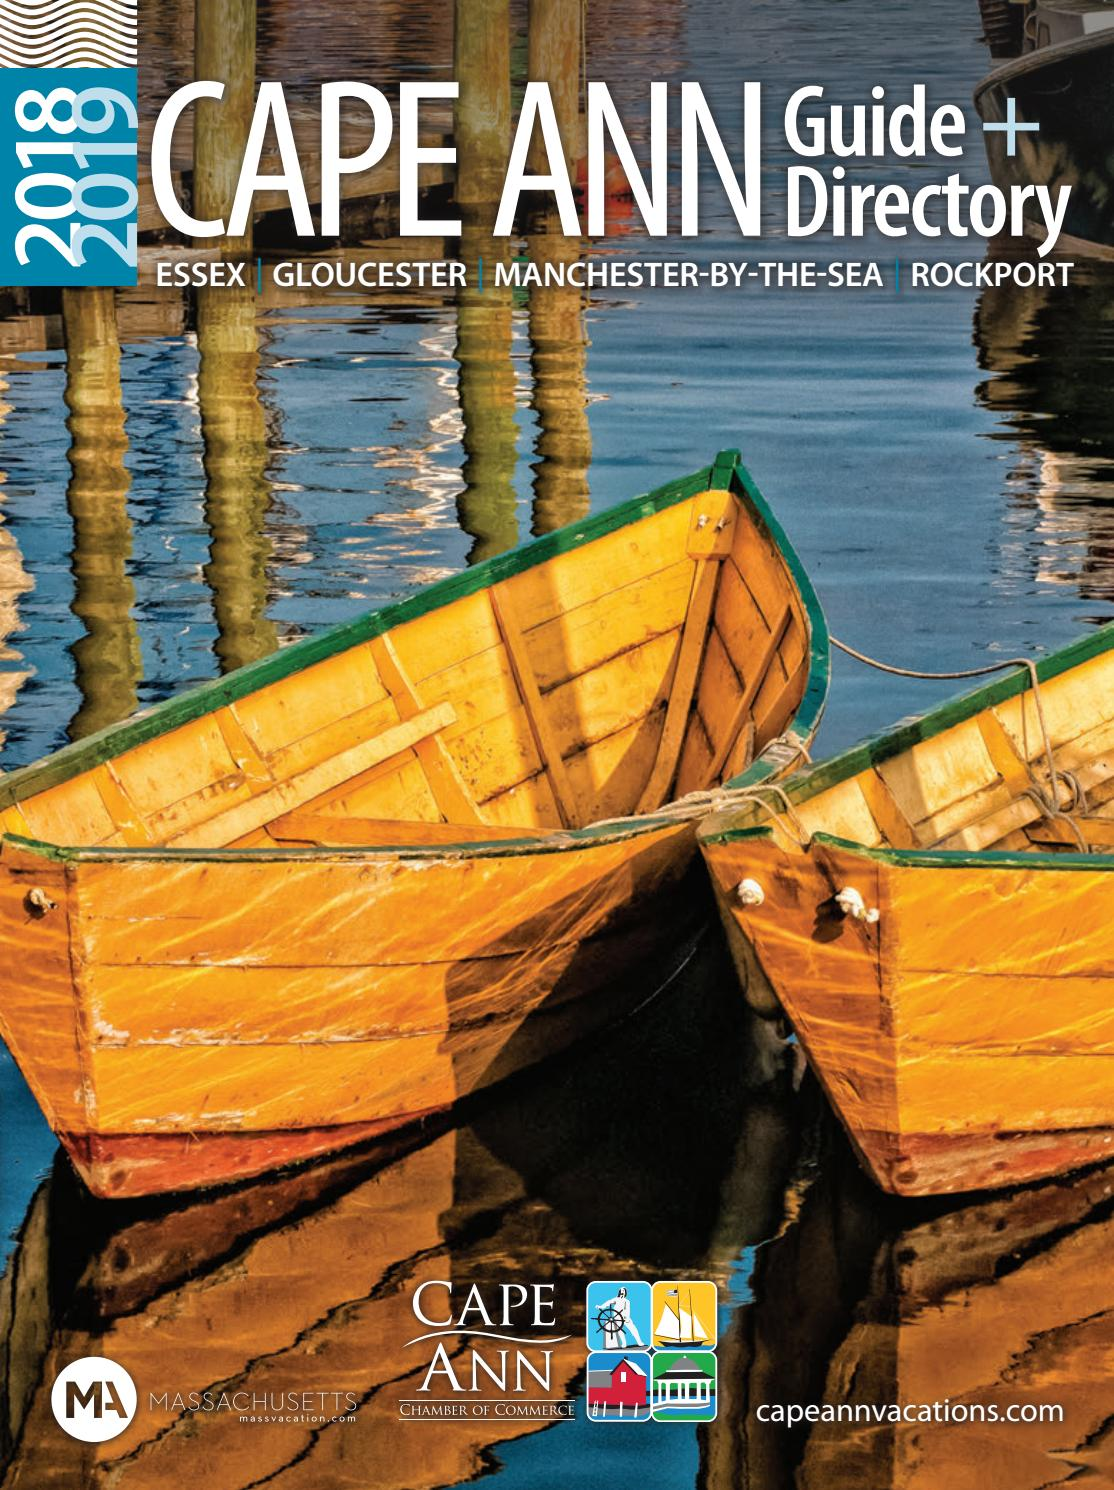 Cape Ann Guide Directory 2018 2019 By